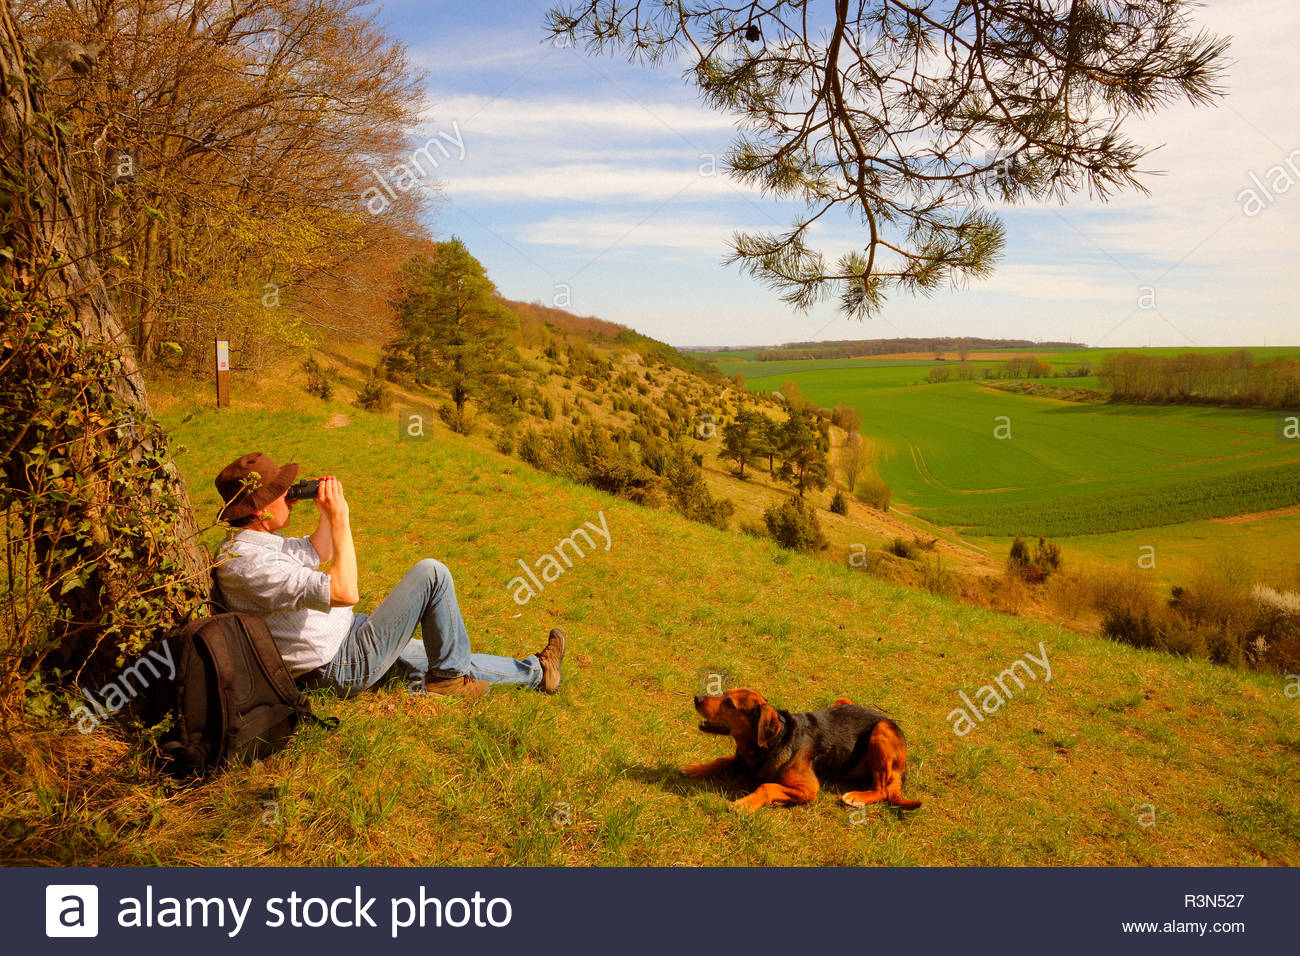 Walker and his dog (Canis familiaris) sitting under a pine tree (Pinus silvestris) to observe the landscape on the top of a hill strewn with juniper trees (Juniperus communis), in the spring, in April, in Picardy - La France. In the distance, there is a deer (Capreolus capreolus) coming out of a grove to cross a field. - Stock Image